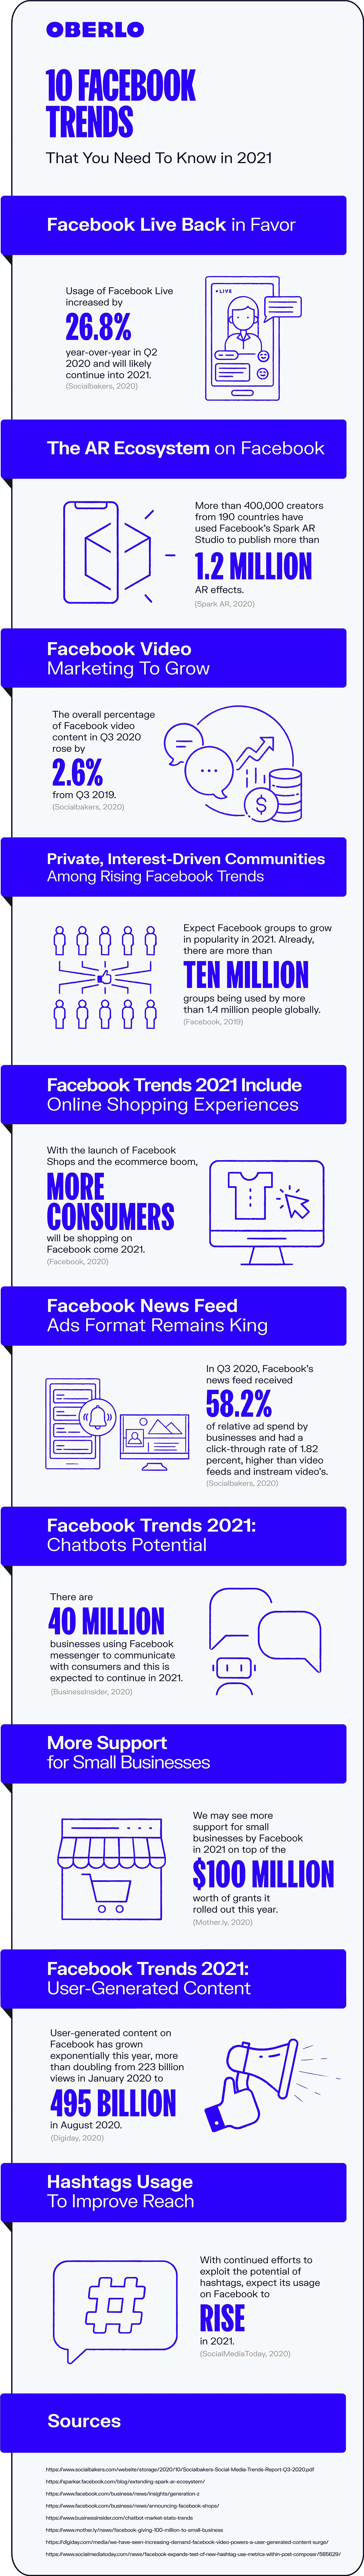 Facebook Trends infographic